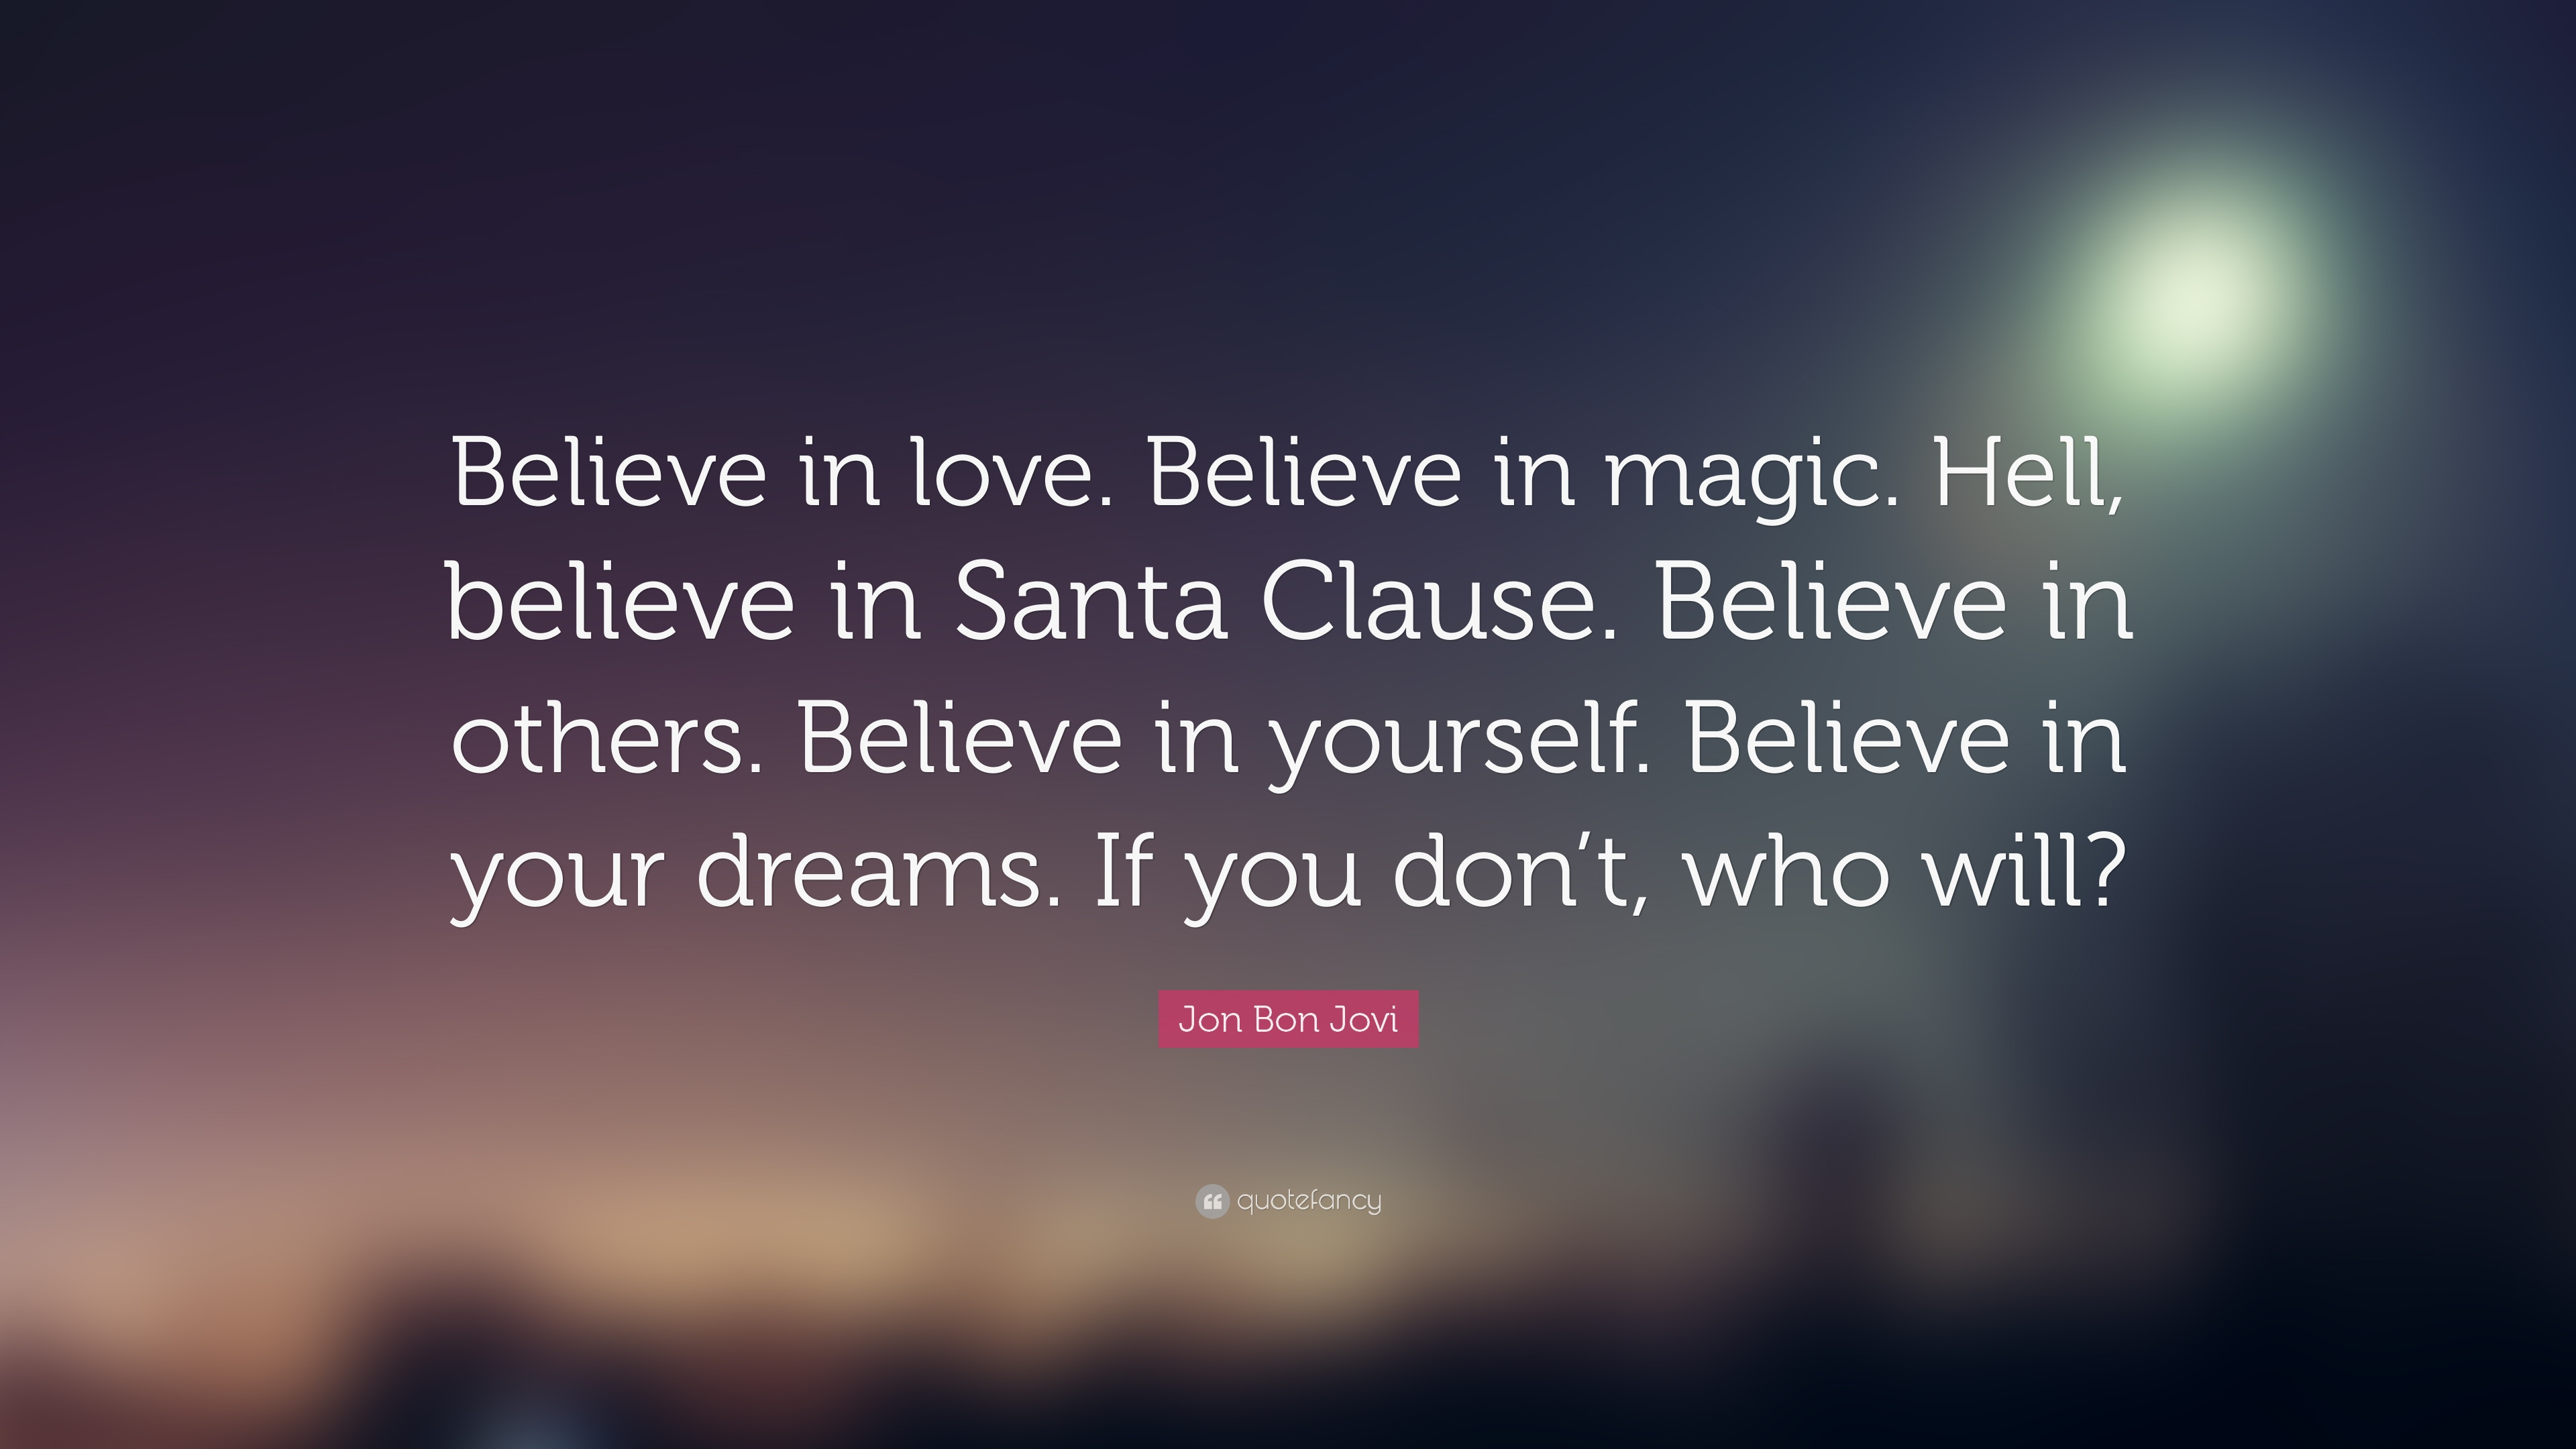 Elegant Jon Bon Jovi Quote: U201cBelieve In Love. Believe In Magic. Hell,